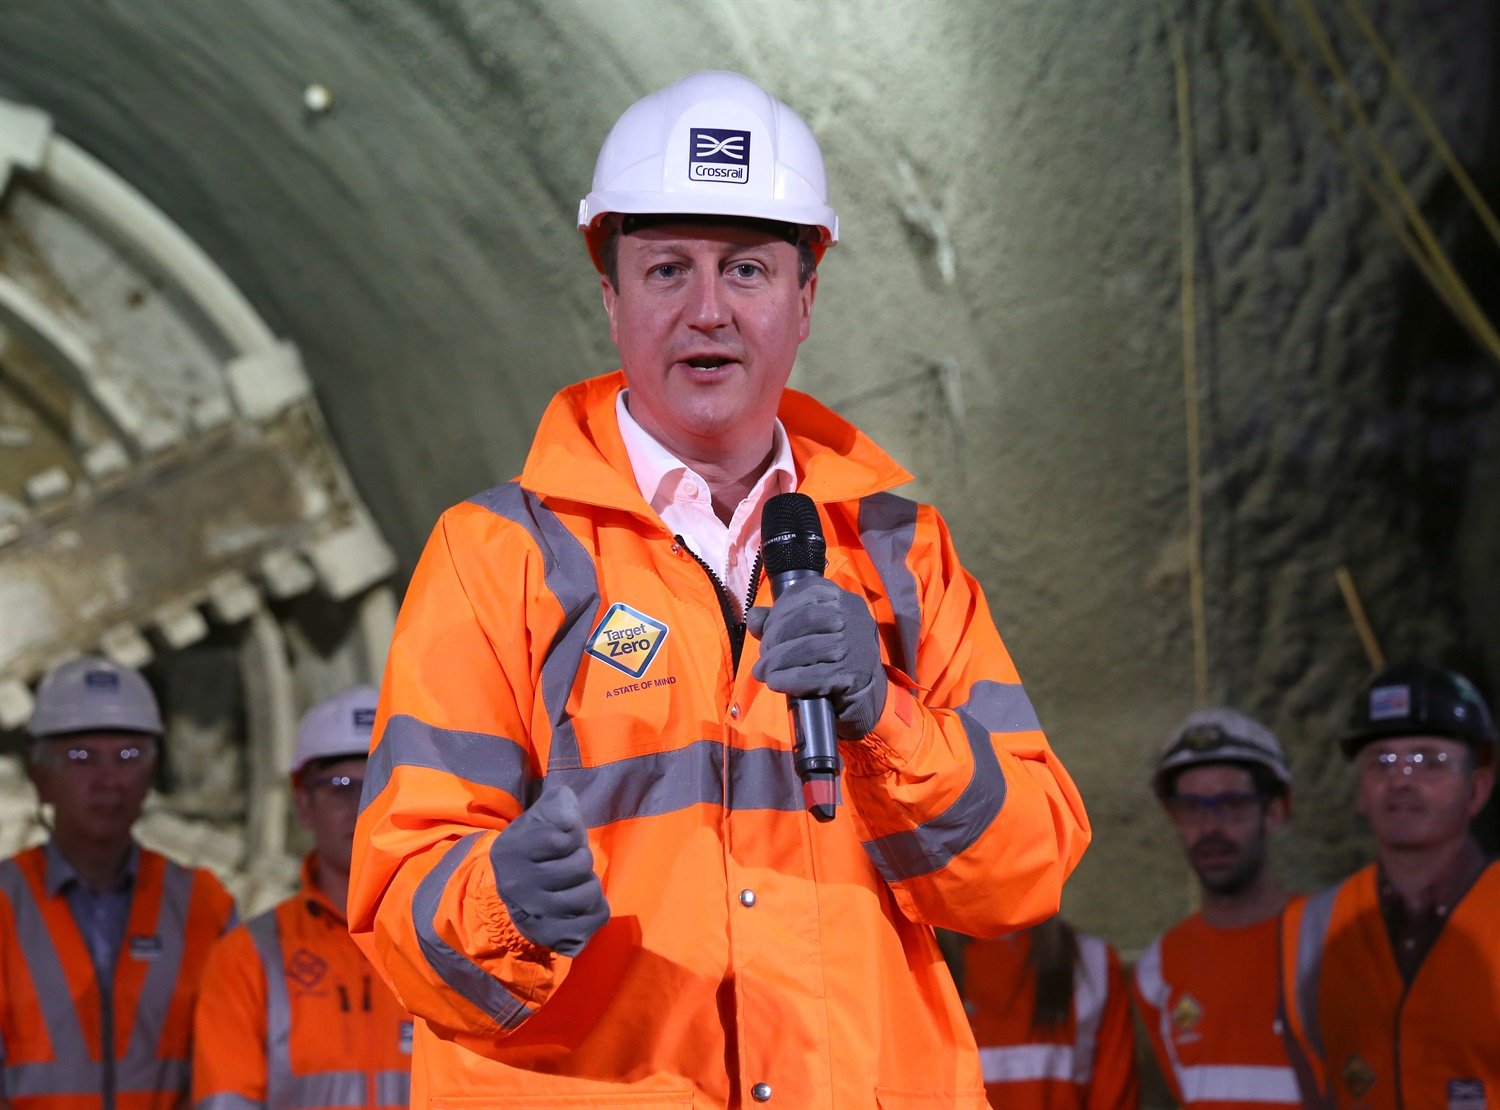 Prime Minister and Mayor of London celebrate completion of Crossrail s tunnelling marathon 200349